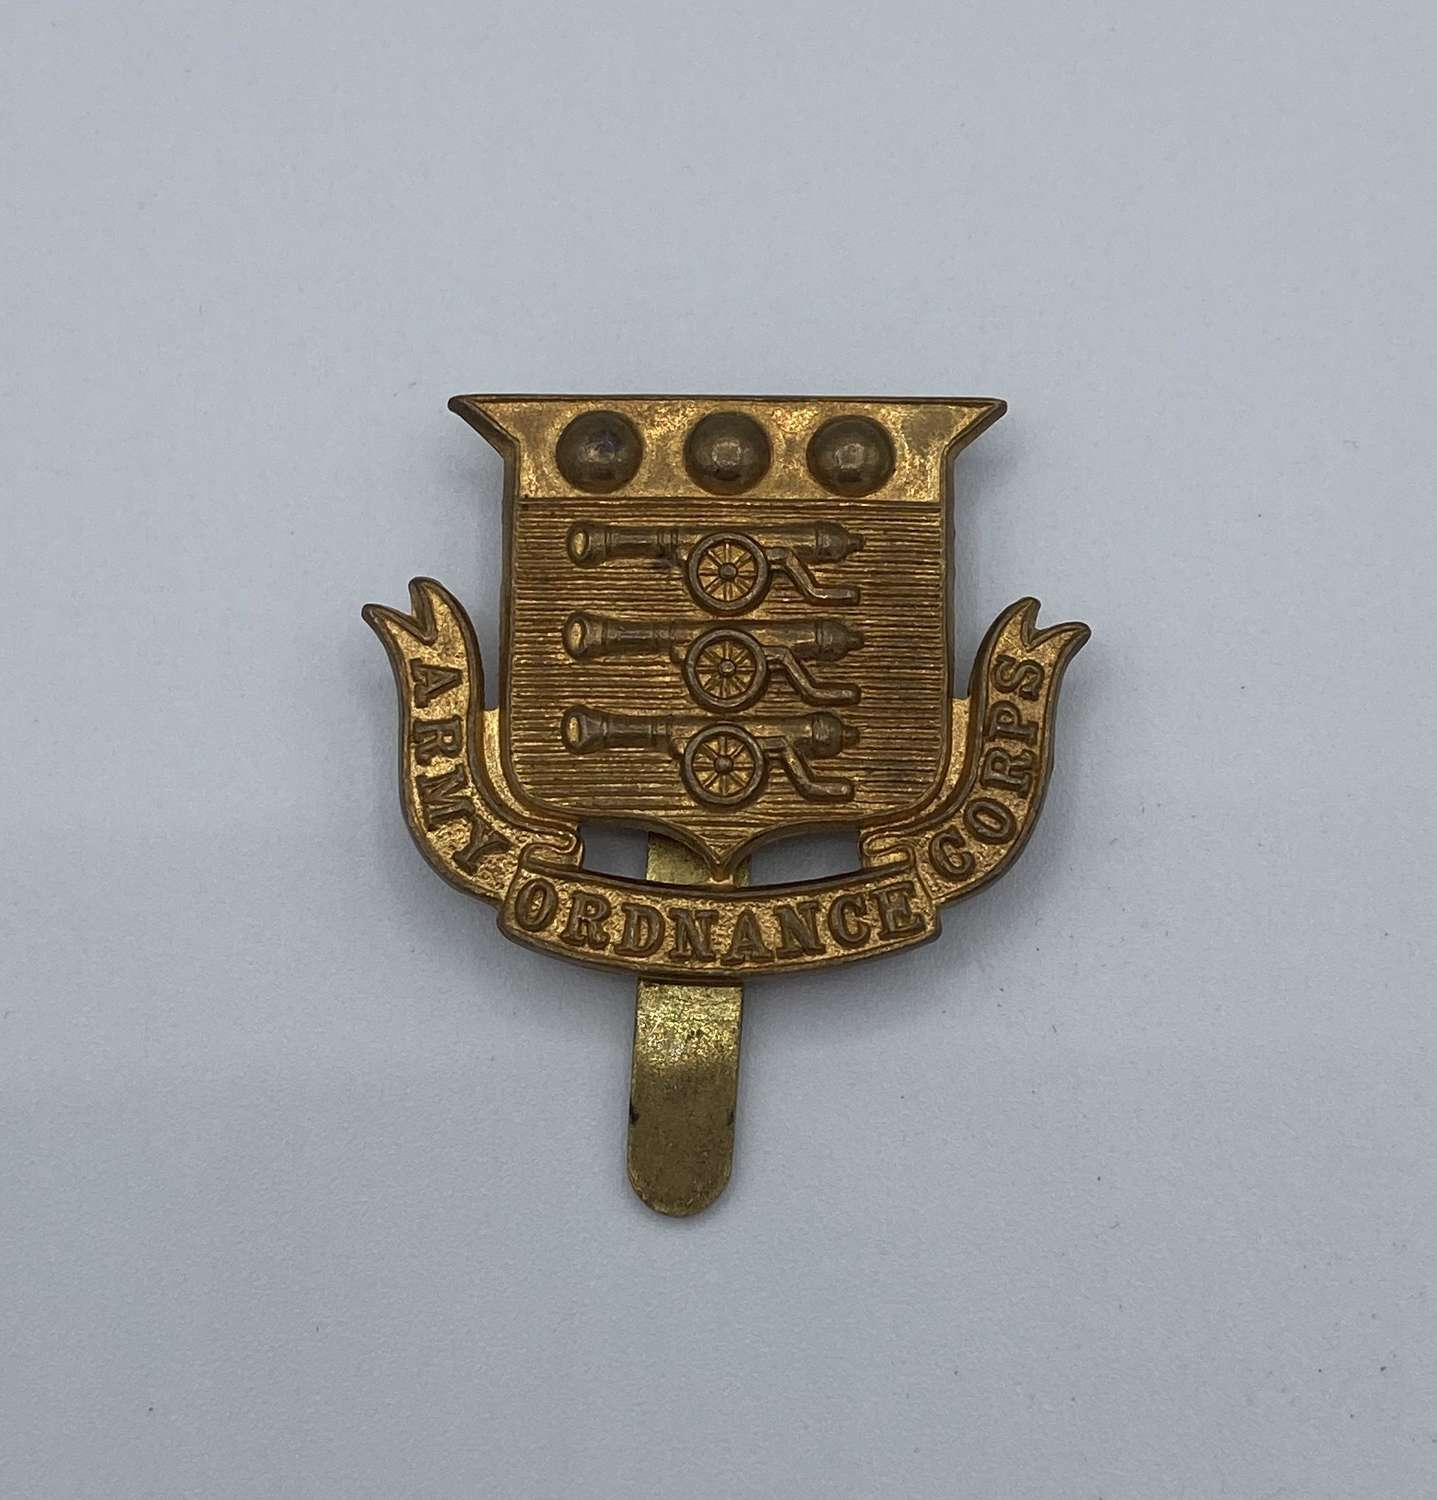 WW2 Army Ordnance Corps Slider Cap Badge